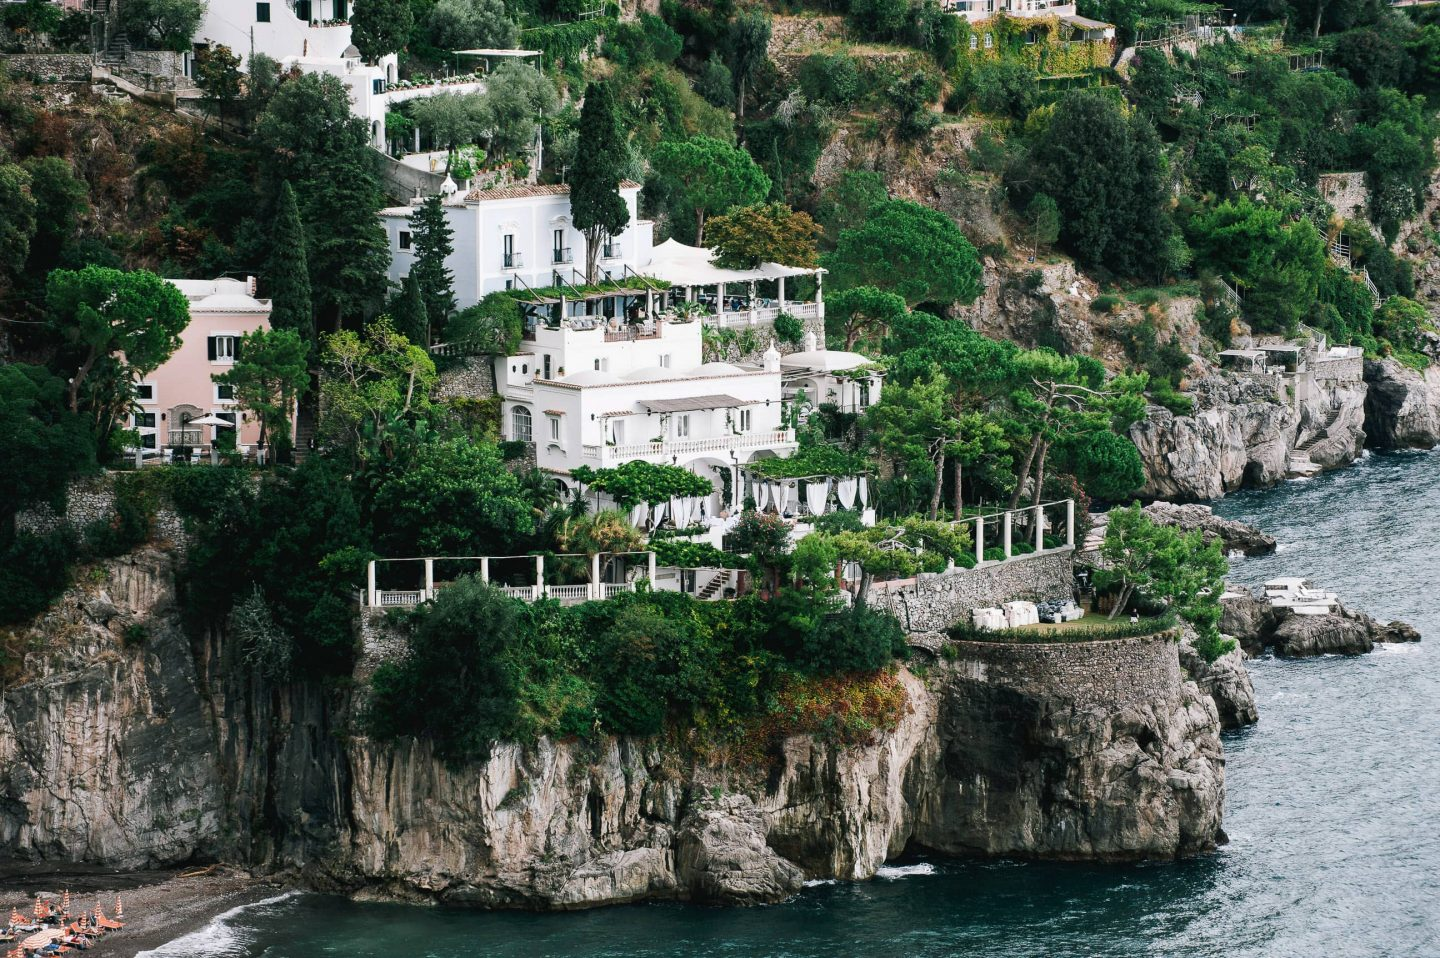 Aerial view of Villa Tre Ville at this Positano wedding weekend in Italy | Photo by Gianni di Natale